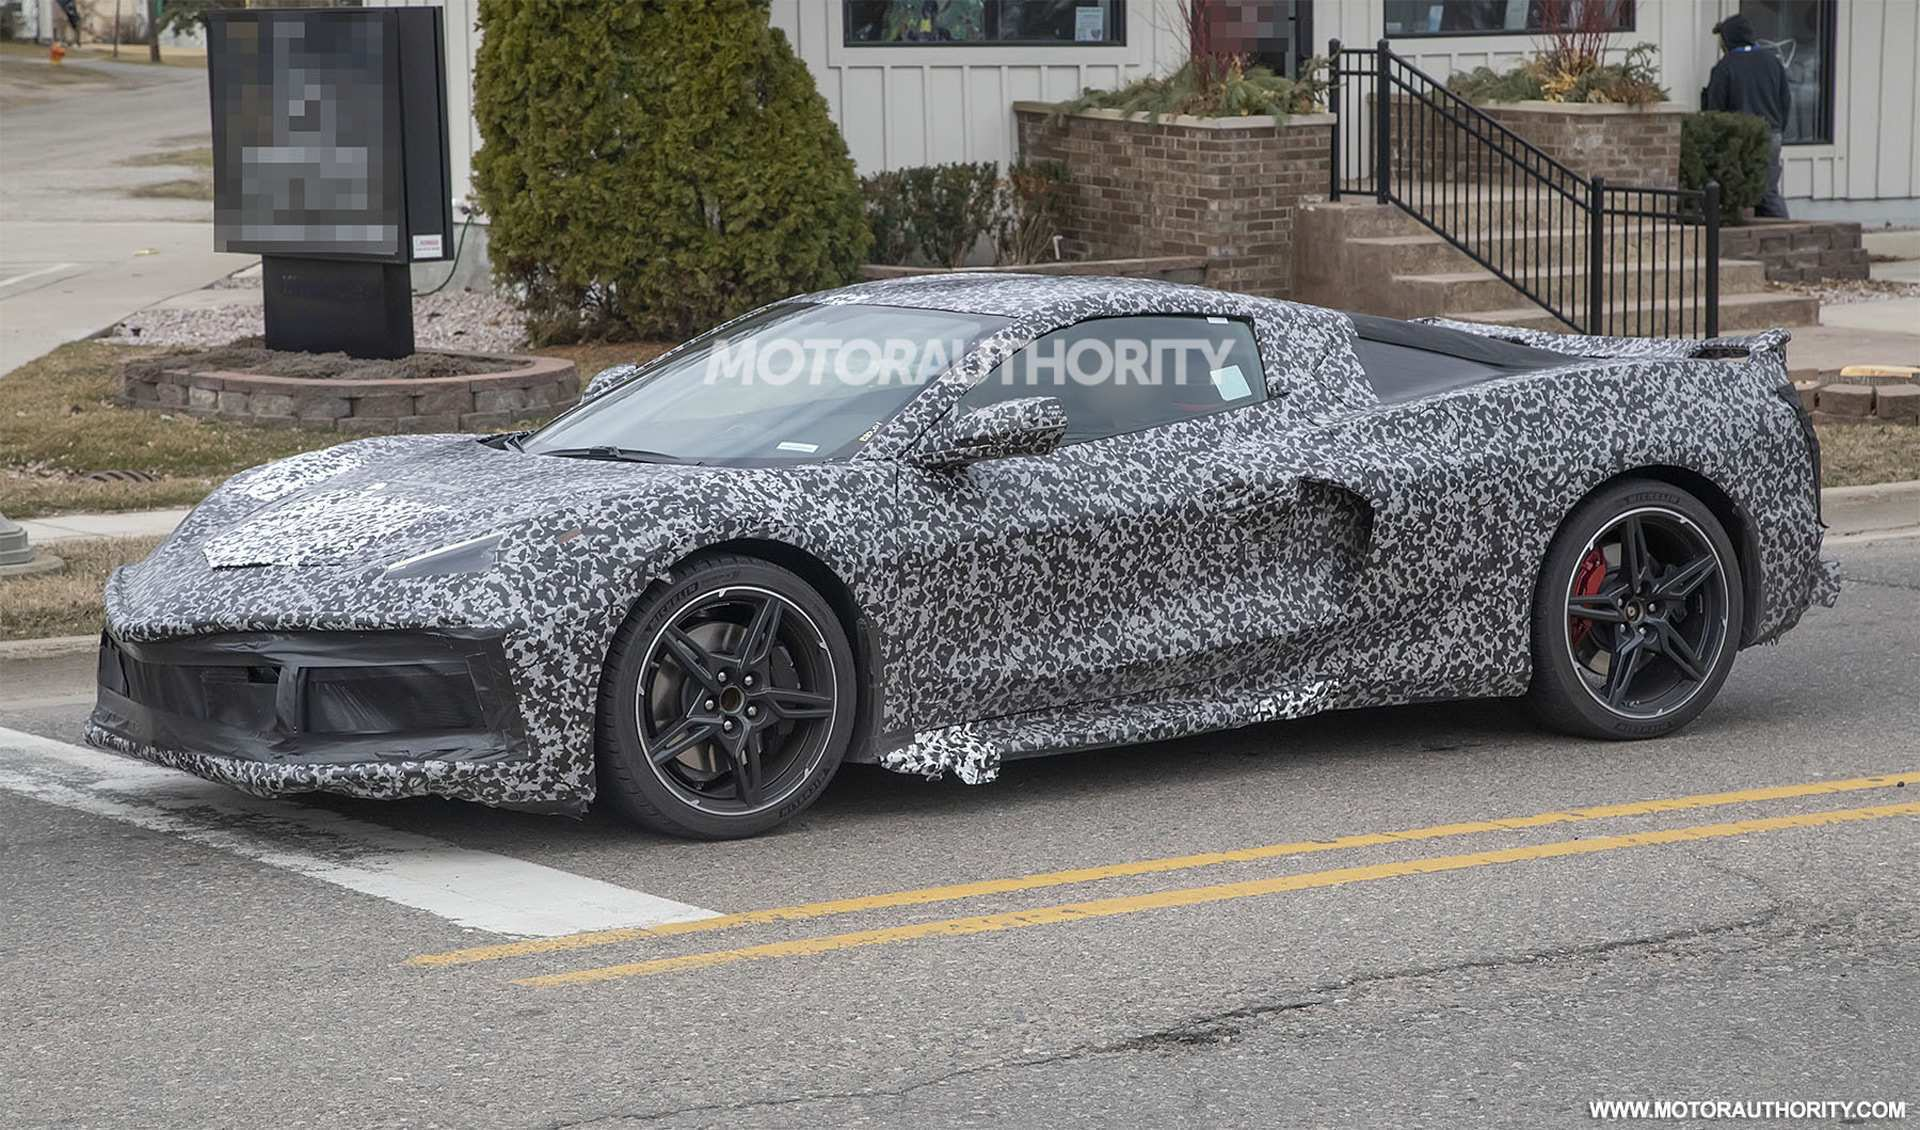 16 All New 2020 Chevrolet Corvette Z06 Price Design And Review